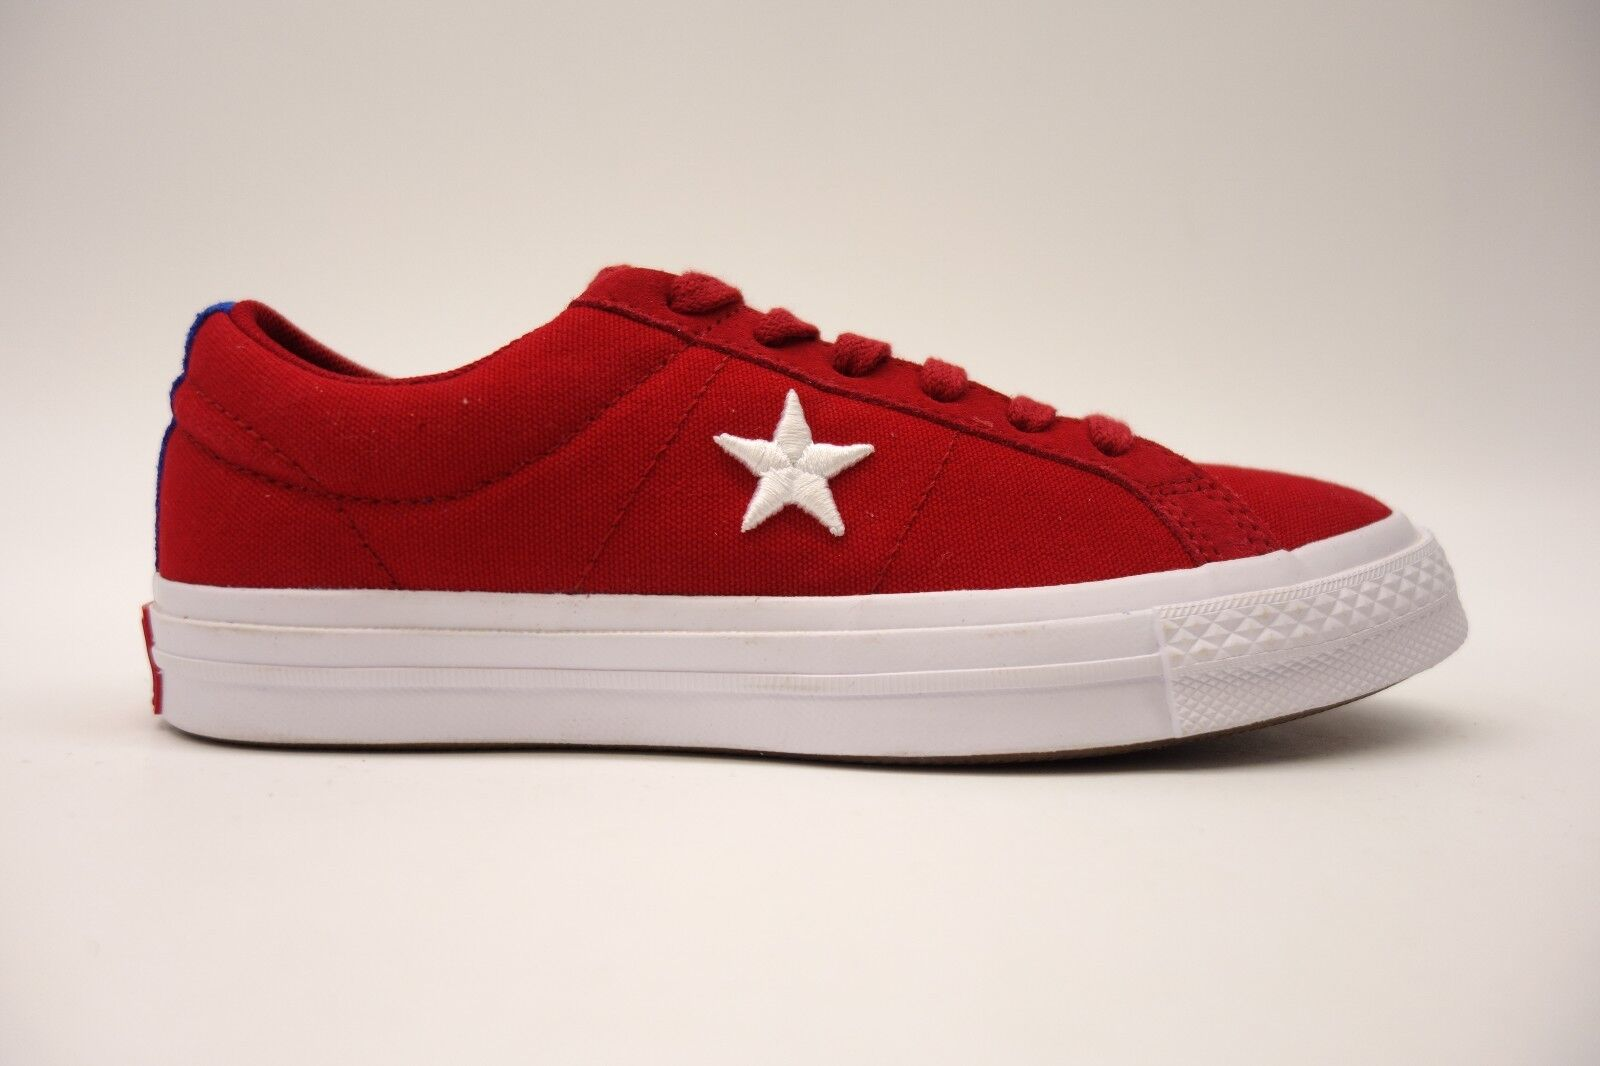 NEU Converse Damenschuhe American Bright ROT Chuck Taylor One Star Low Canvas Schuhes 7